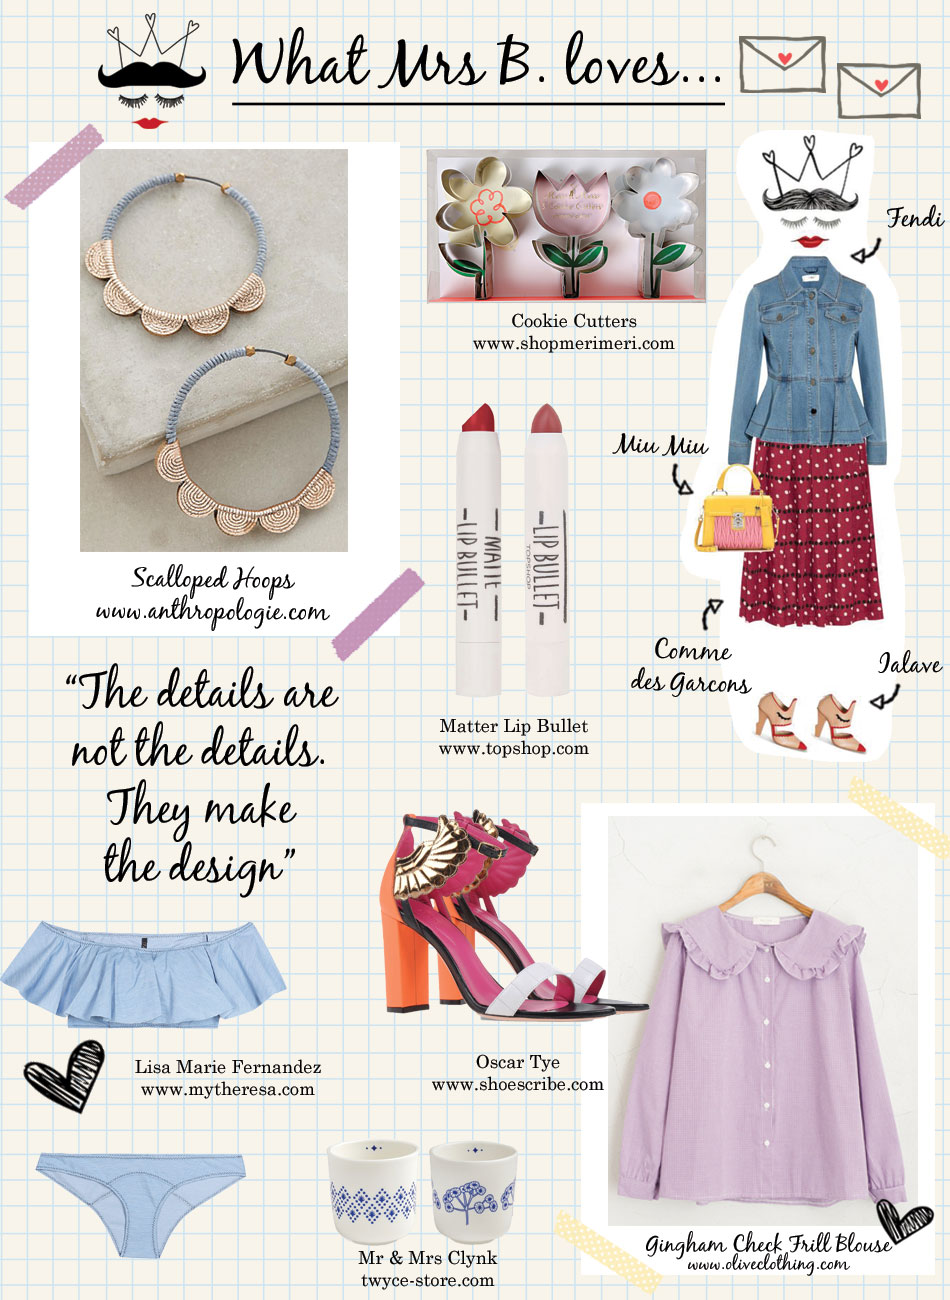 Mrs B.'s picks: the coolest things to buy in April - www.bonjourchiara.com